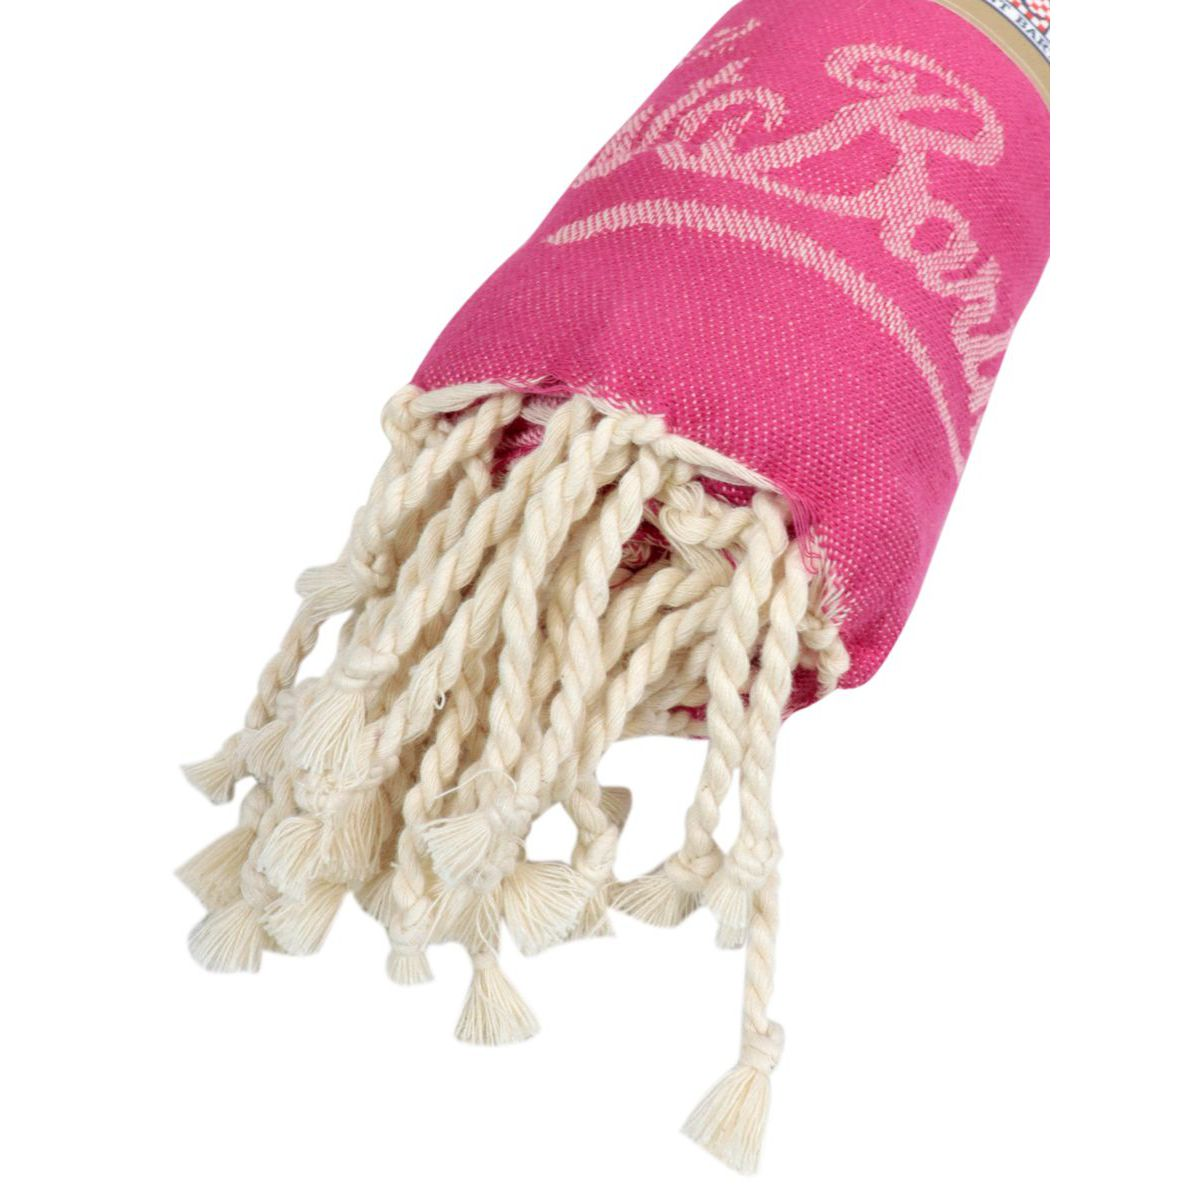 Beach towel in light patterned cotton with fringes Fuchsia MC2 Saint Barth